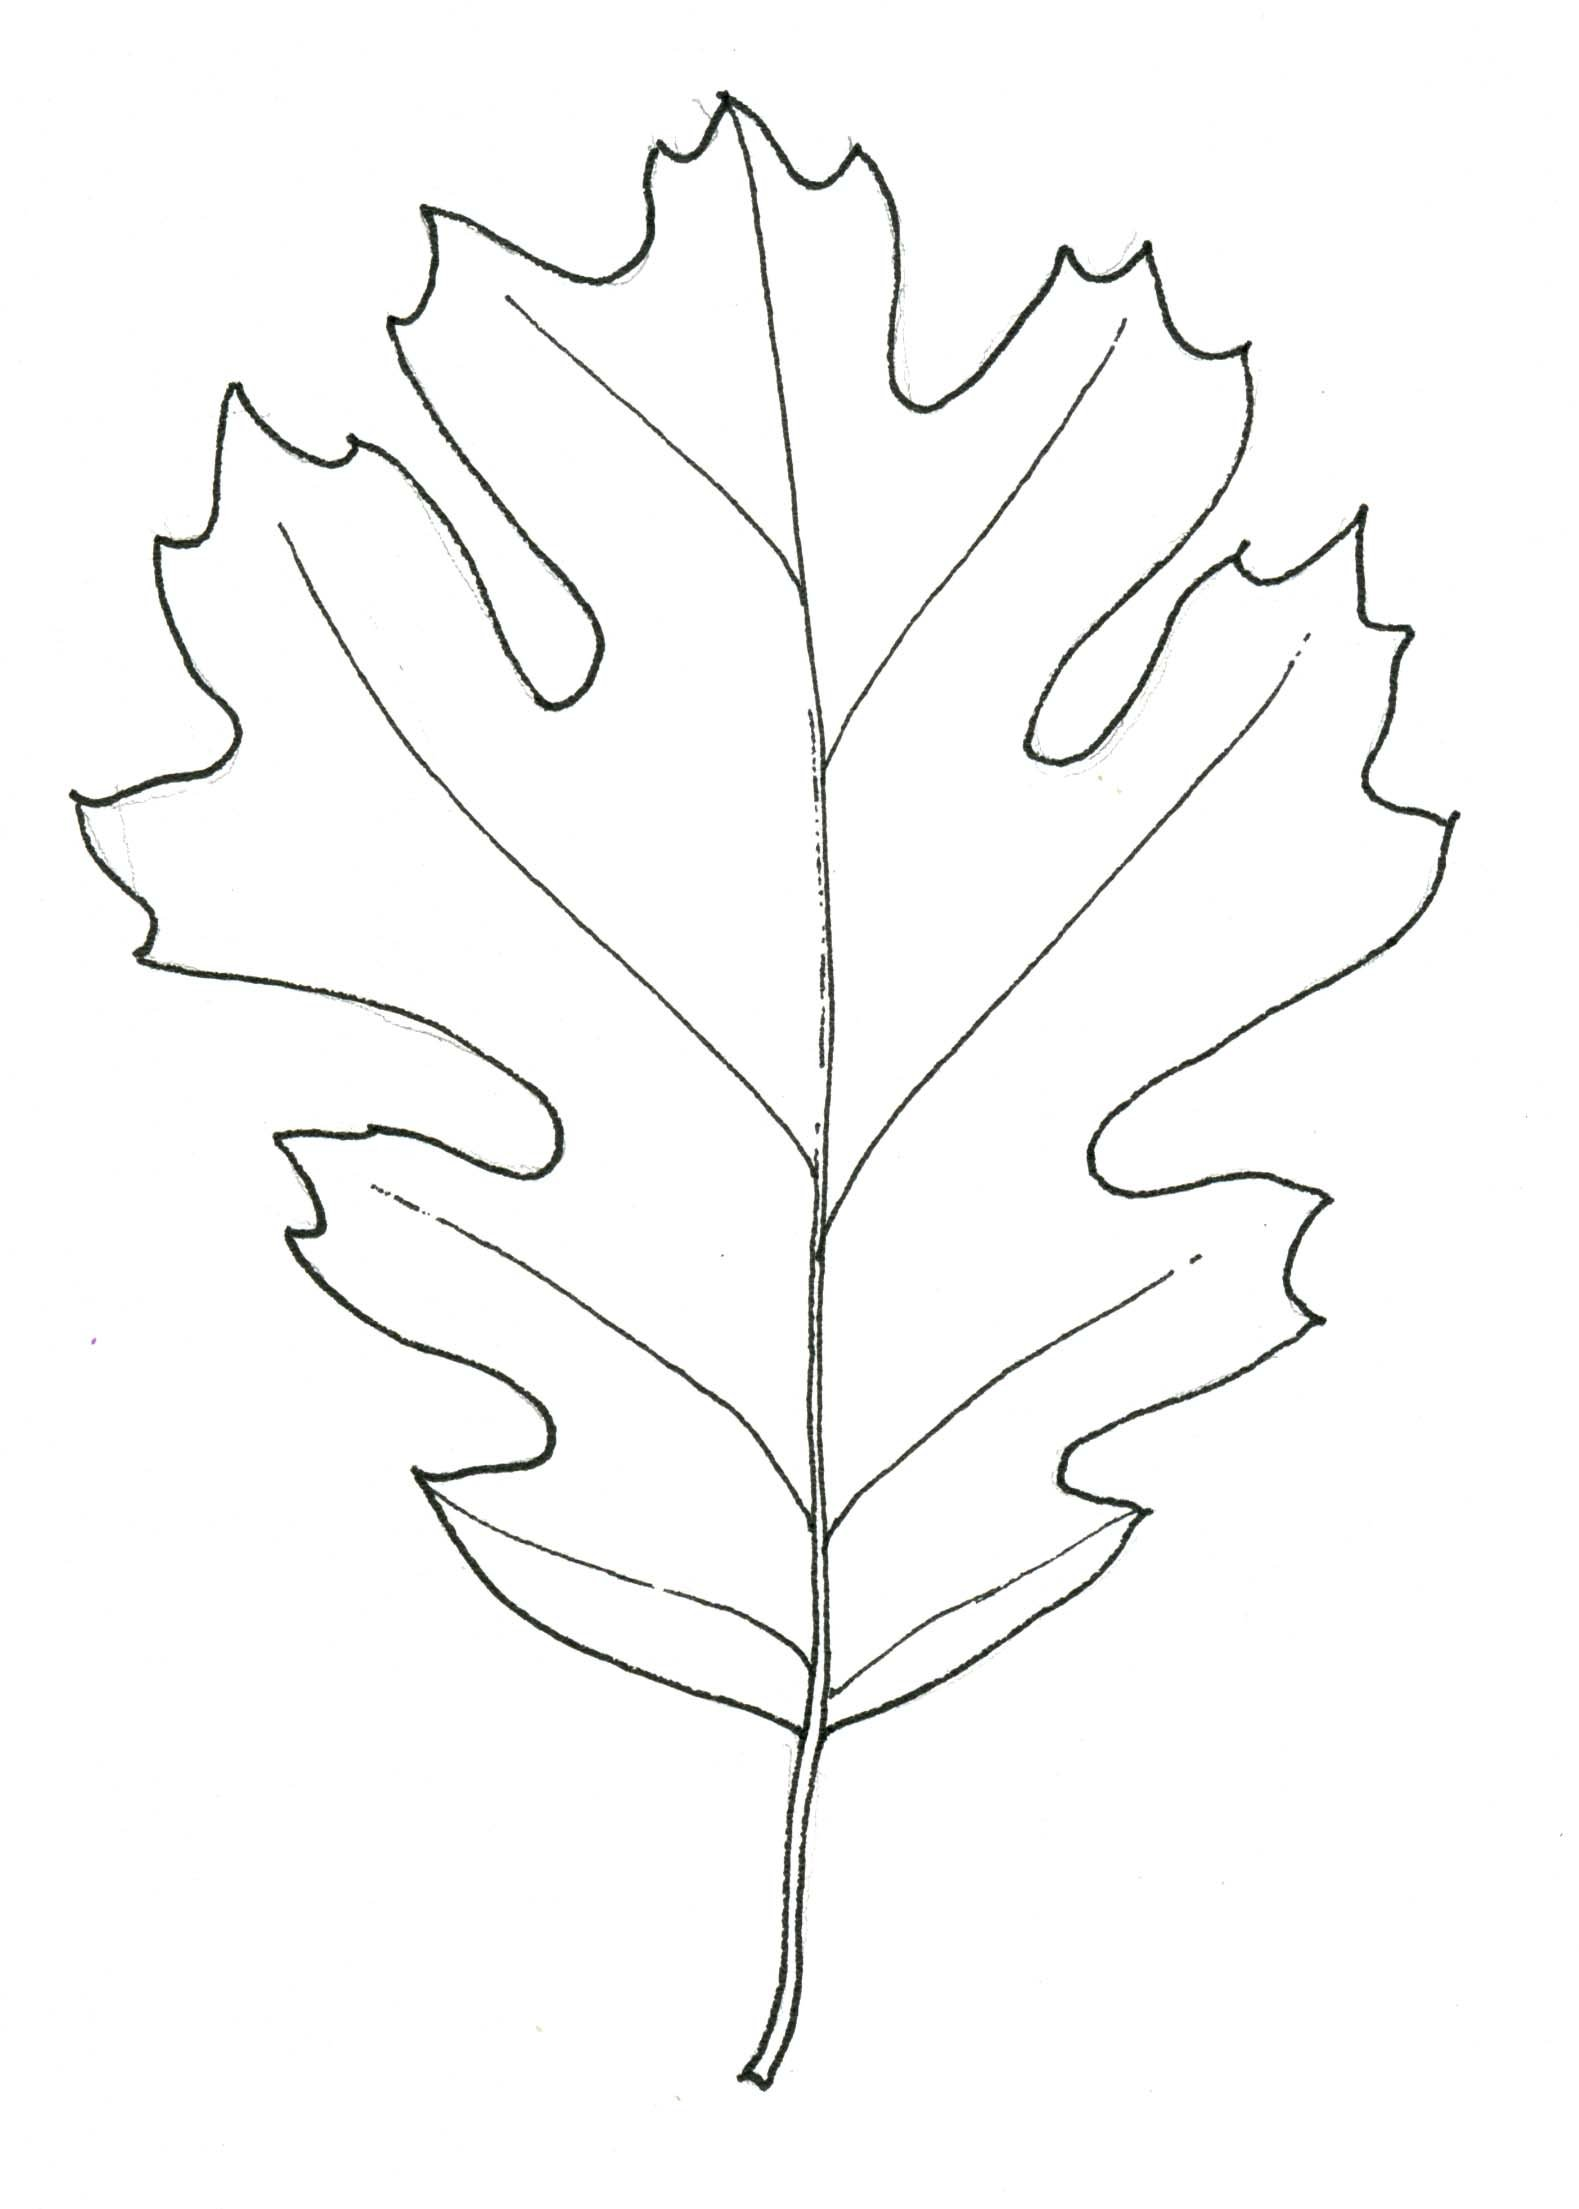 Black Oak Leaf Stippleboard 3